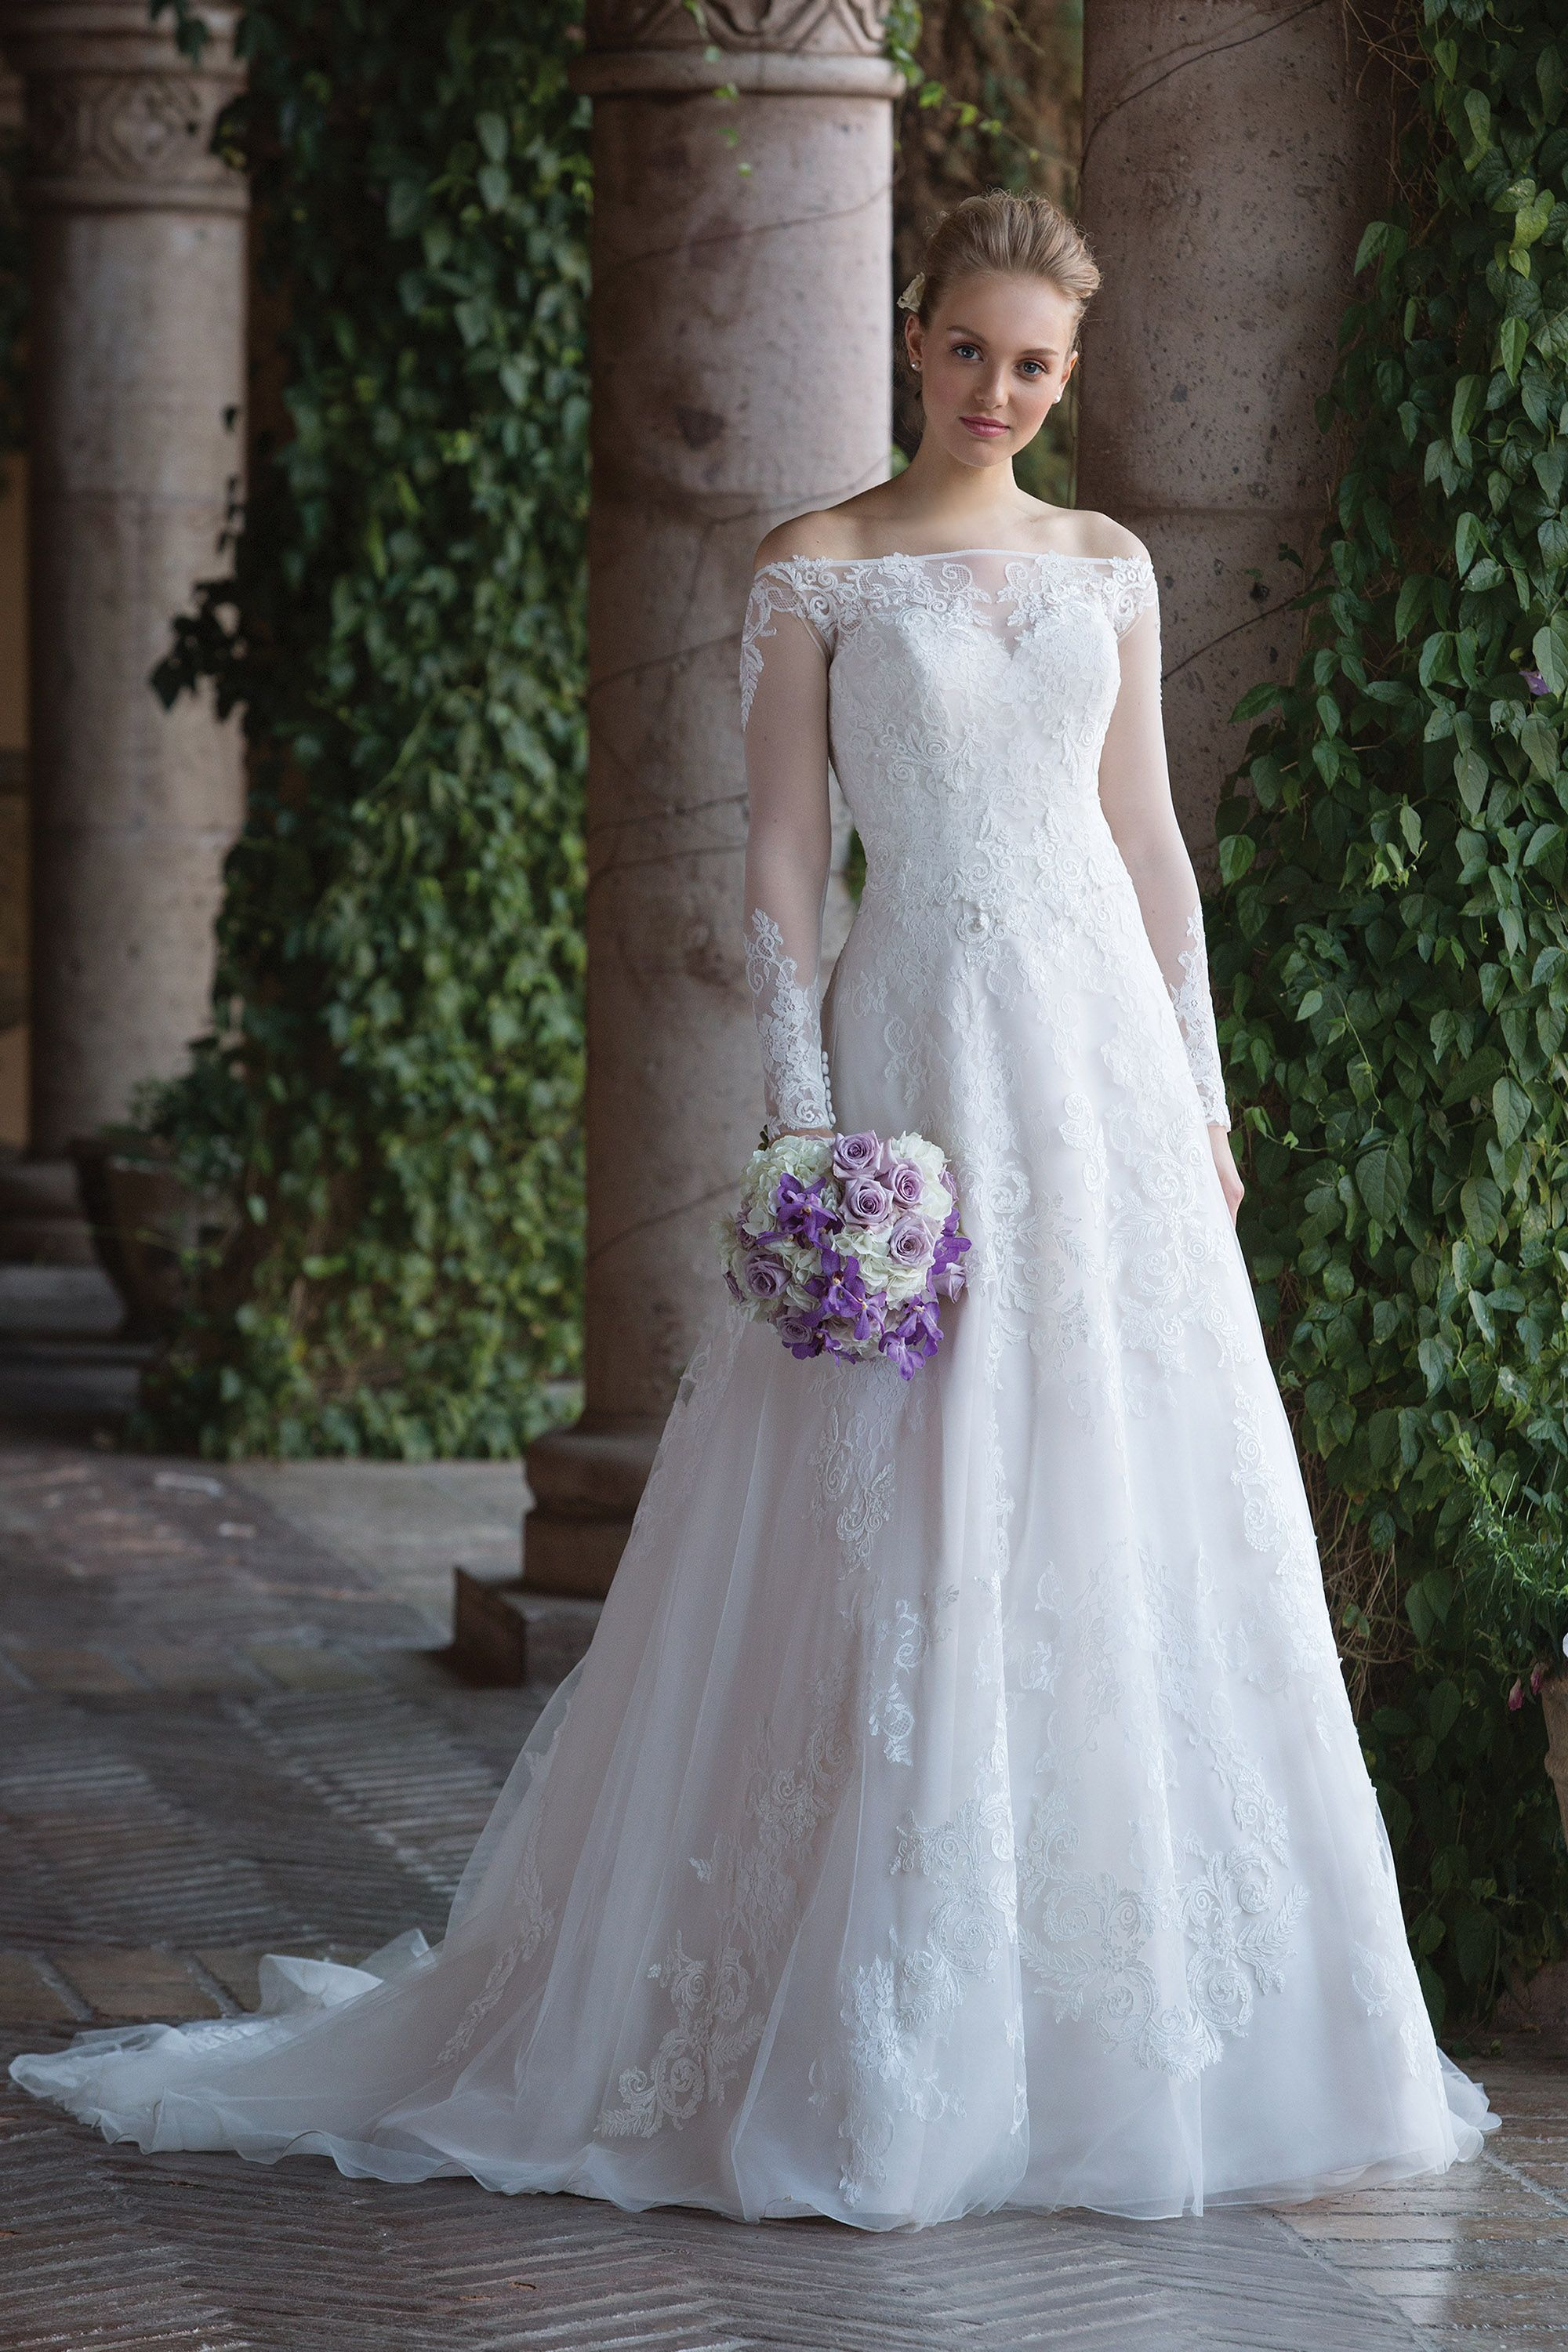 Lace dress styles for wedding  Allover Lace ALine Gown with Sweetheart Neckline and Jacket STYLE